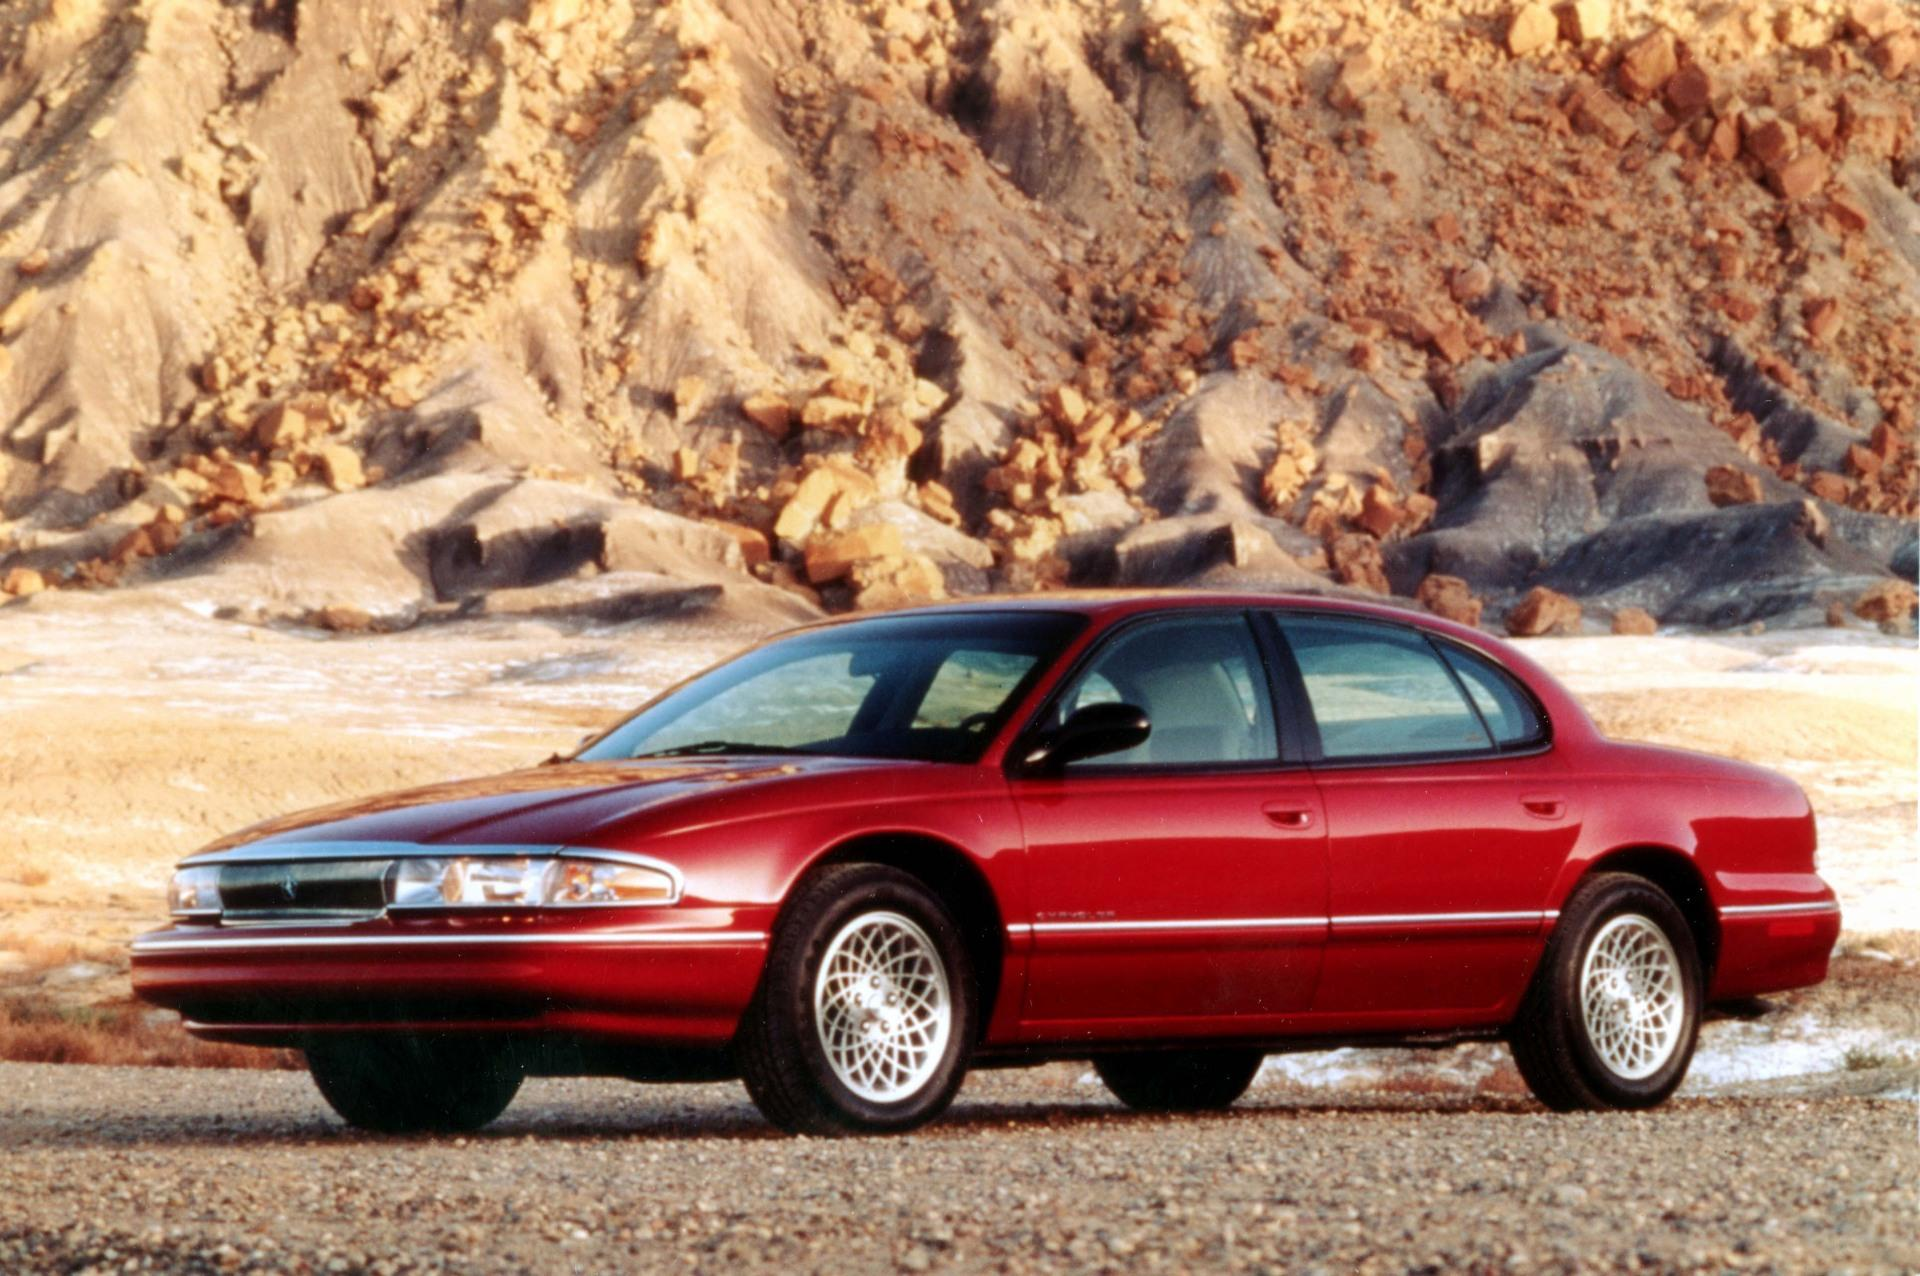 1994 chrysler new yorker pictures history value research news conceptcarz com